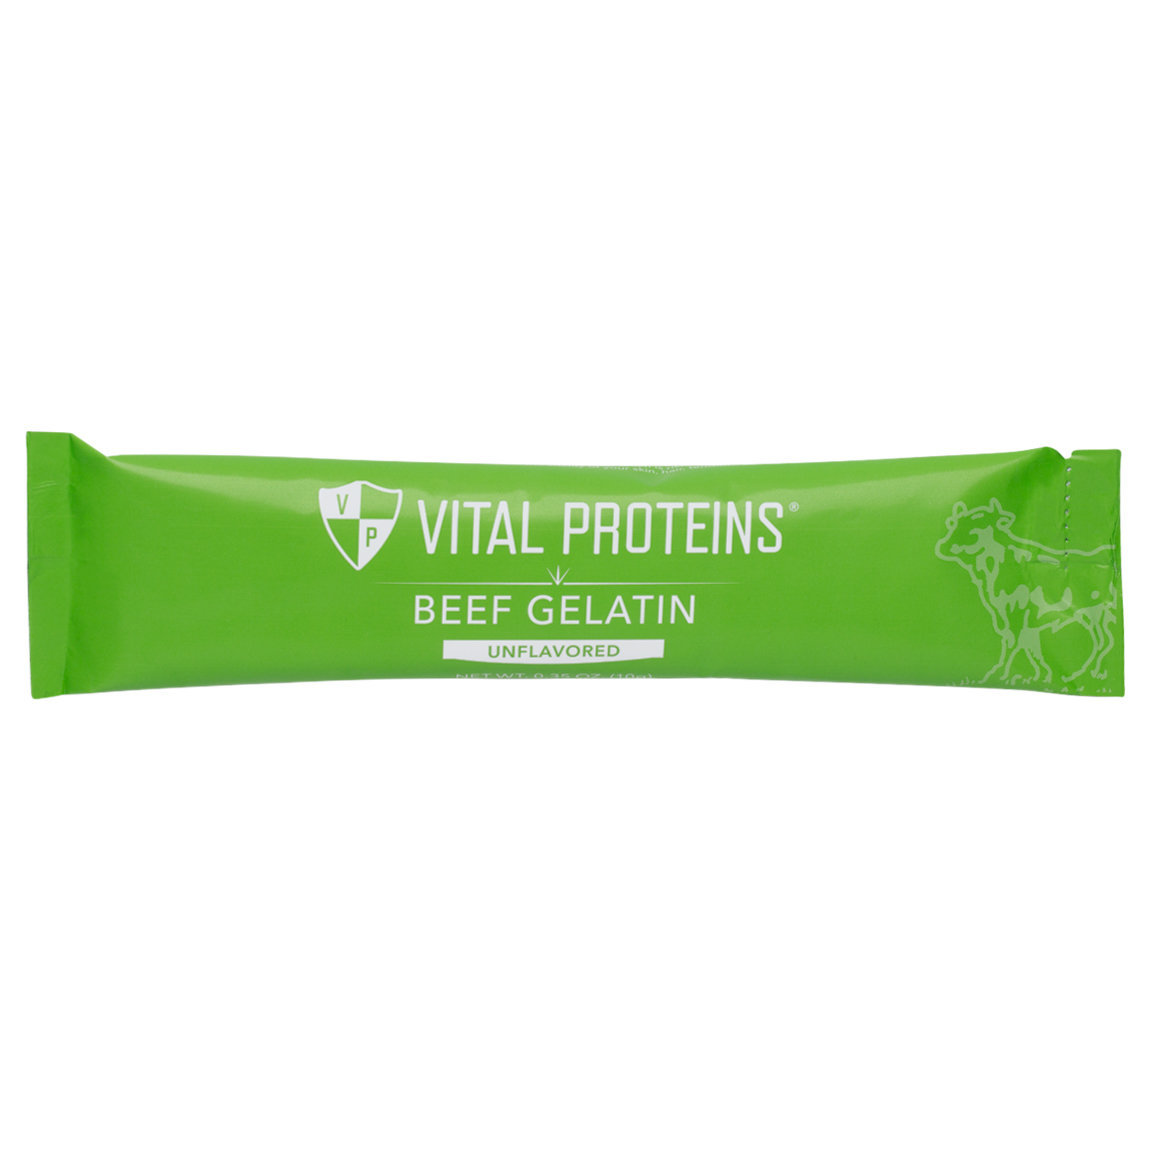 Vital Proteins Beef Gelatin Stick Packs alternative view 1 - product swatch.